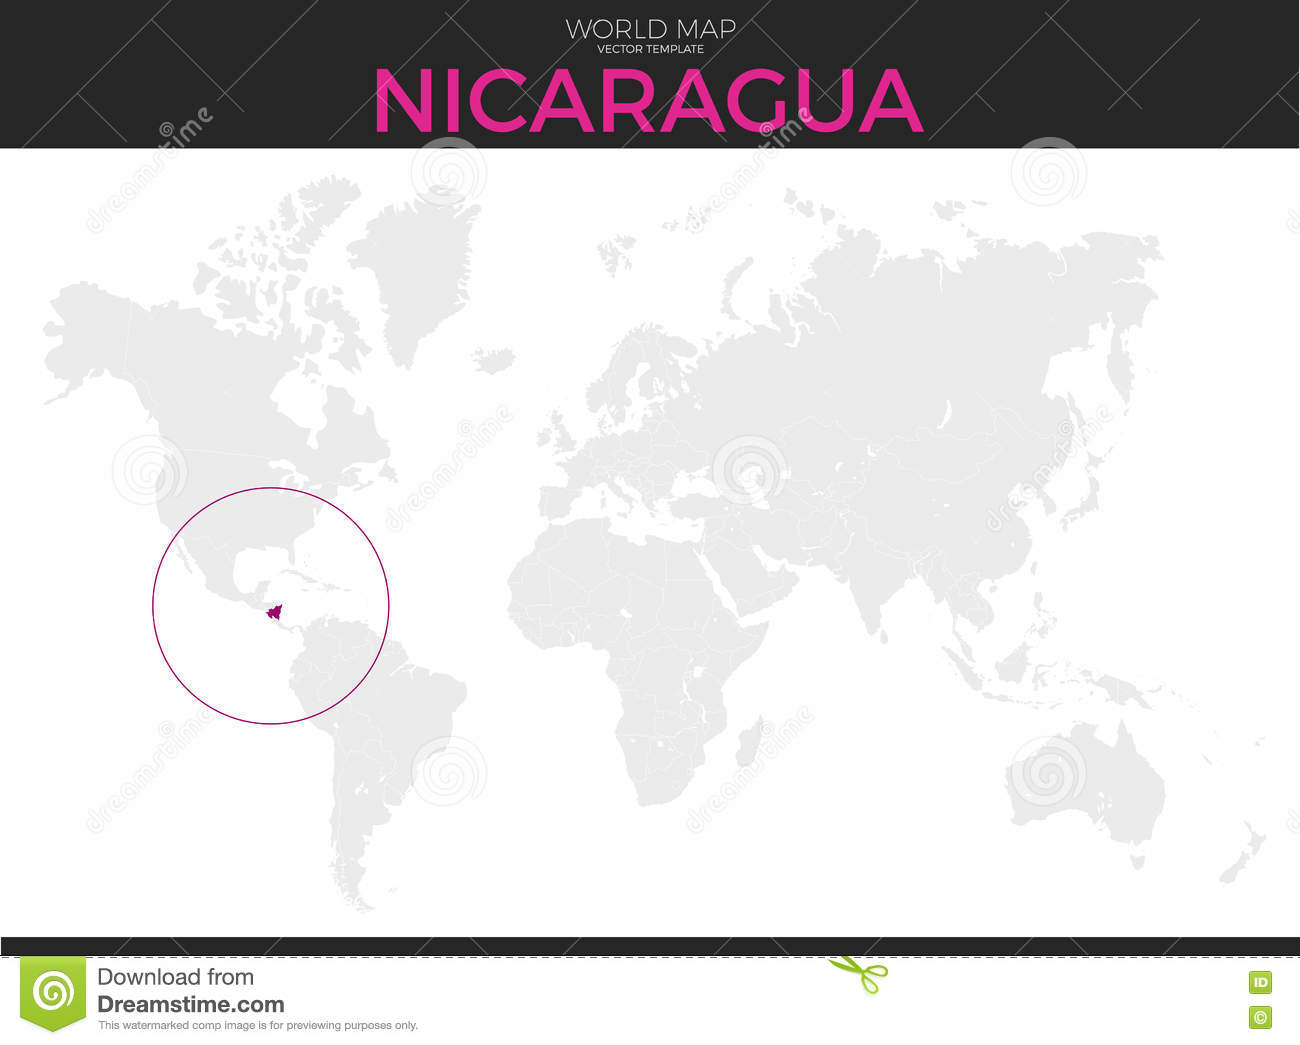 Nicaragua Location On World Map.Nicaragua Location Map Stock Vector Illustration Of Area 73676797